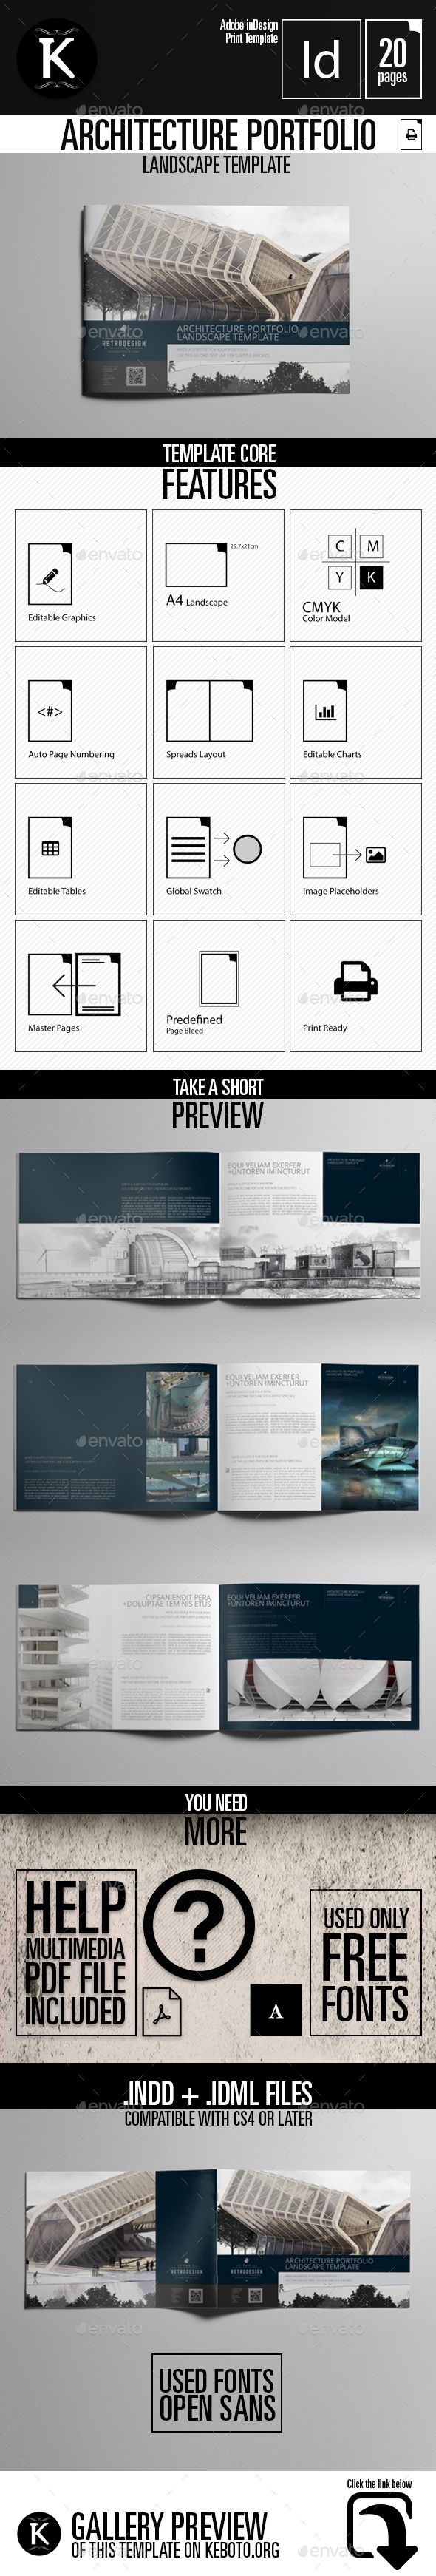 Architecture Design Sheet Format how to create an architecture portfolio | photoshop architectural